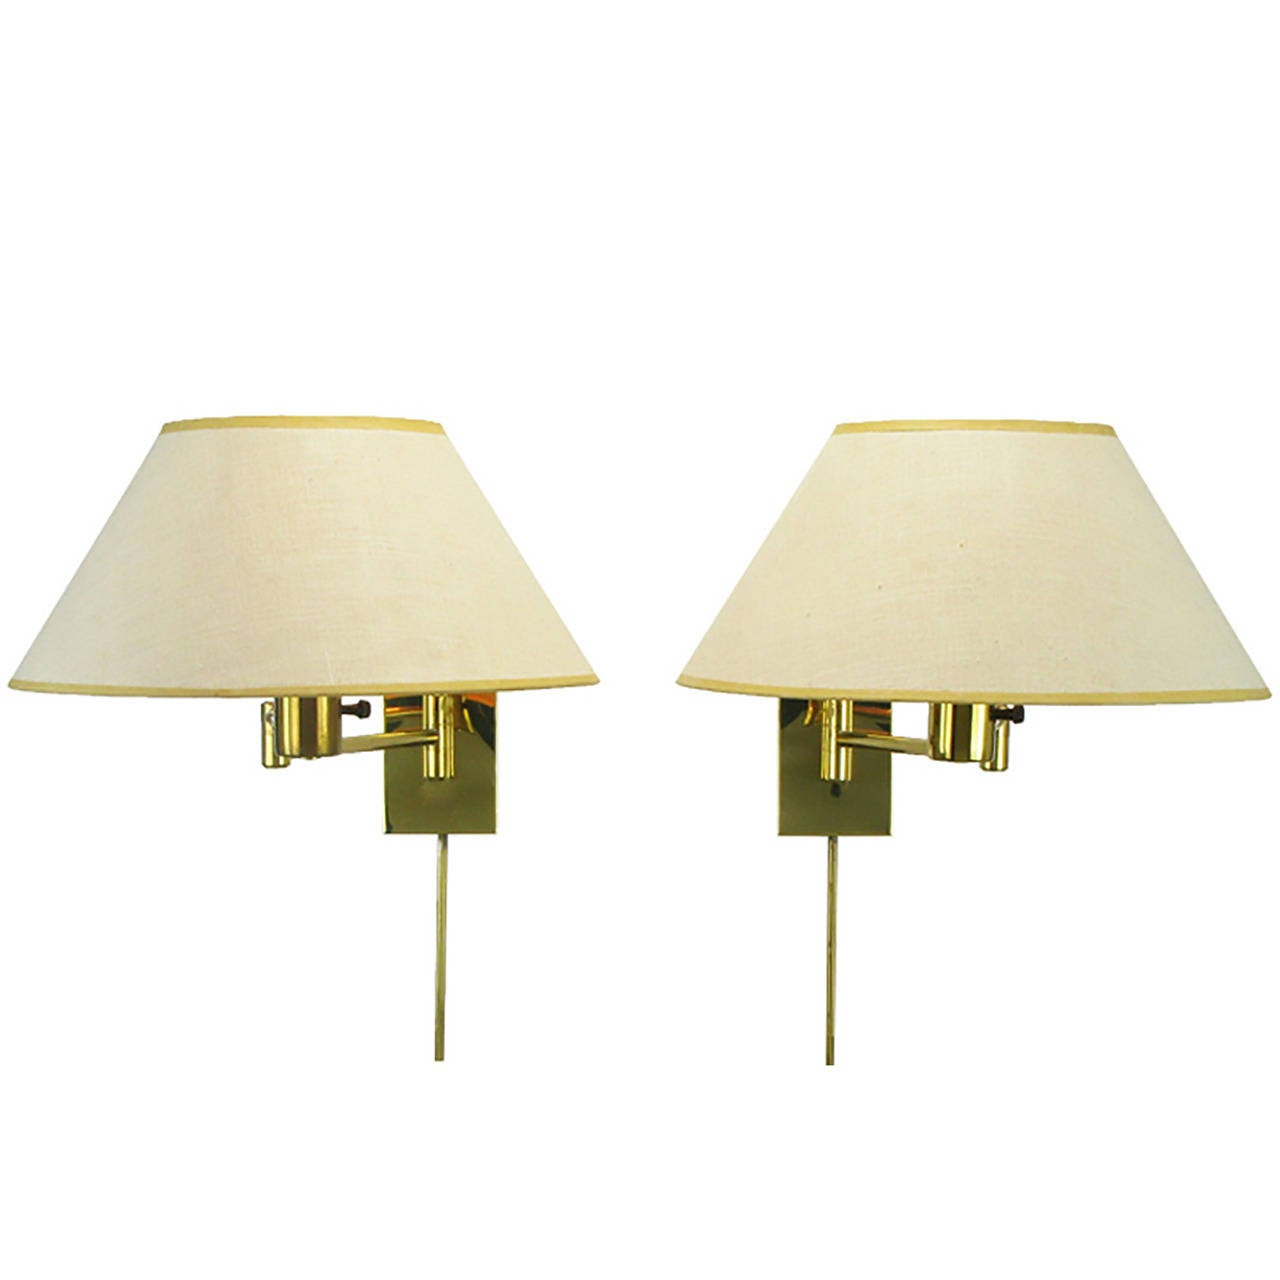 Pair of Walter Von Nessen Brass Swing-Arm Wall Lamps - 3 Pair Of Georg W. Hansen Brass 1706 Double Swing Arm Wall Lamps